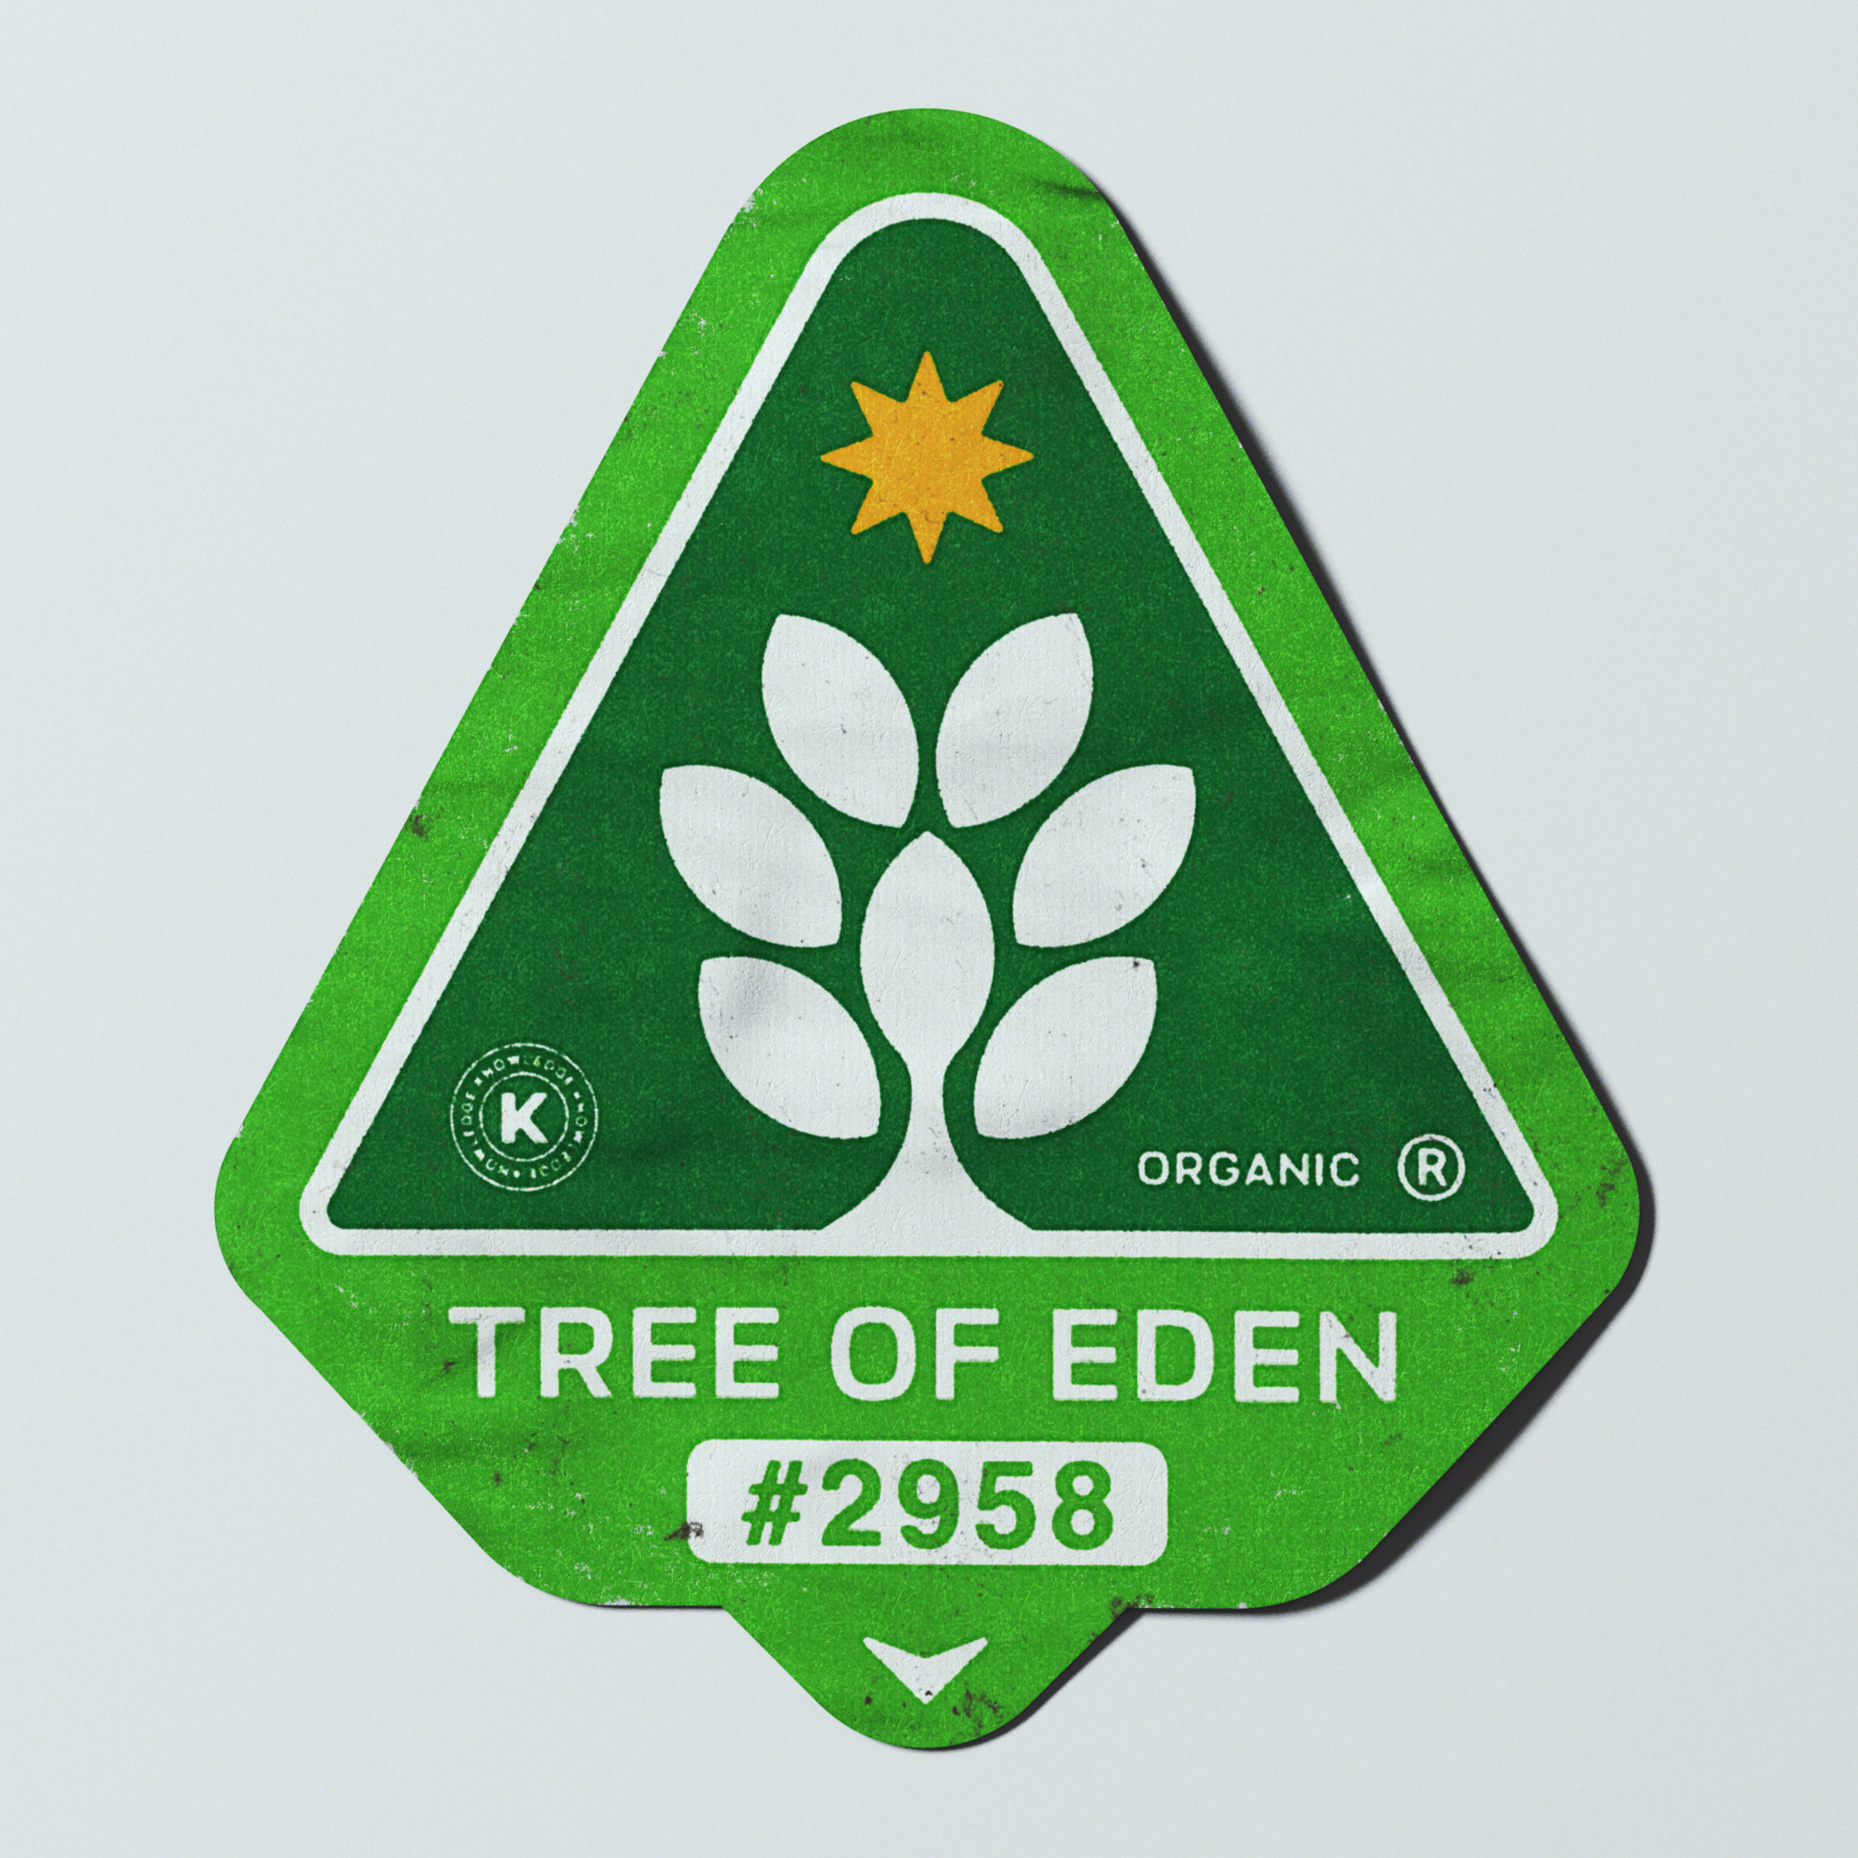 Bao T Nguyen — Tree of eden